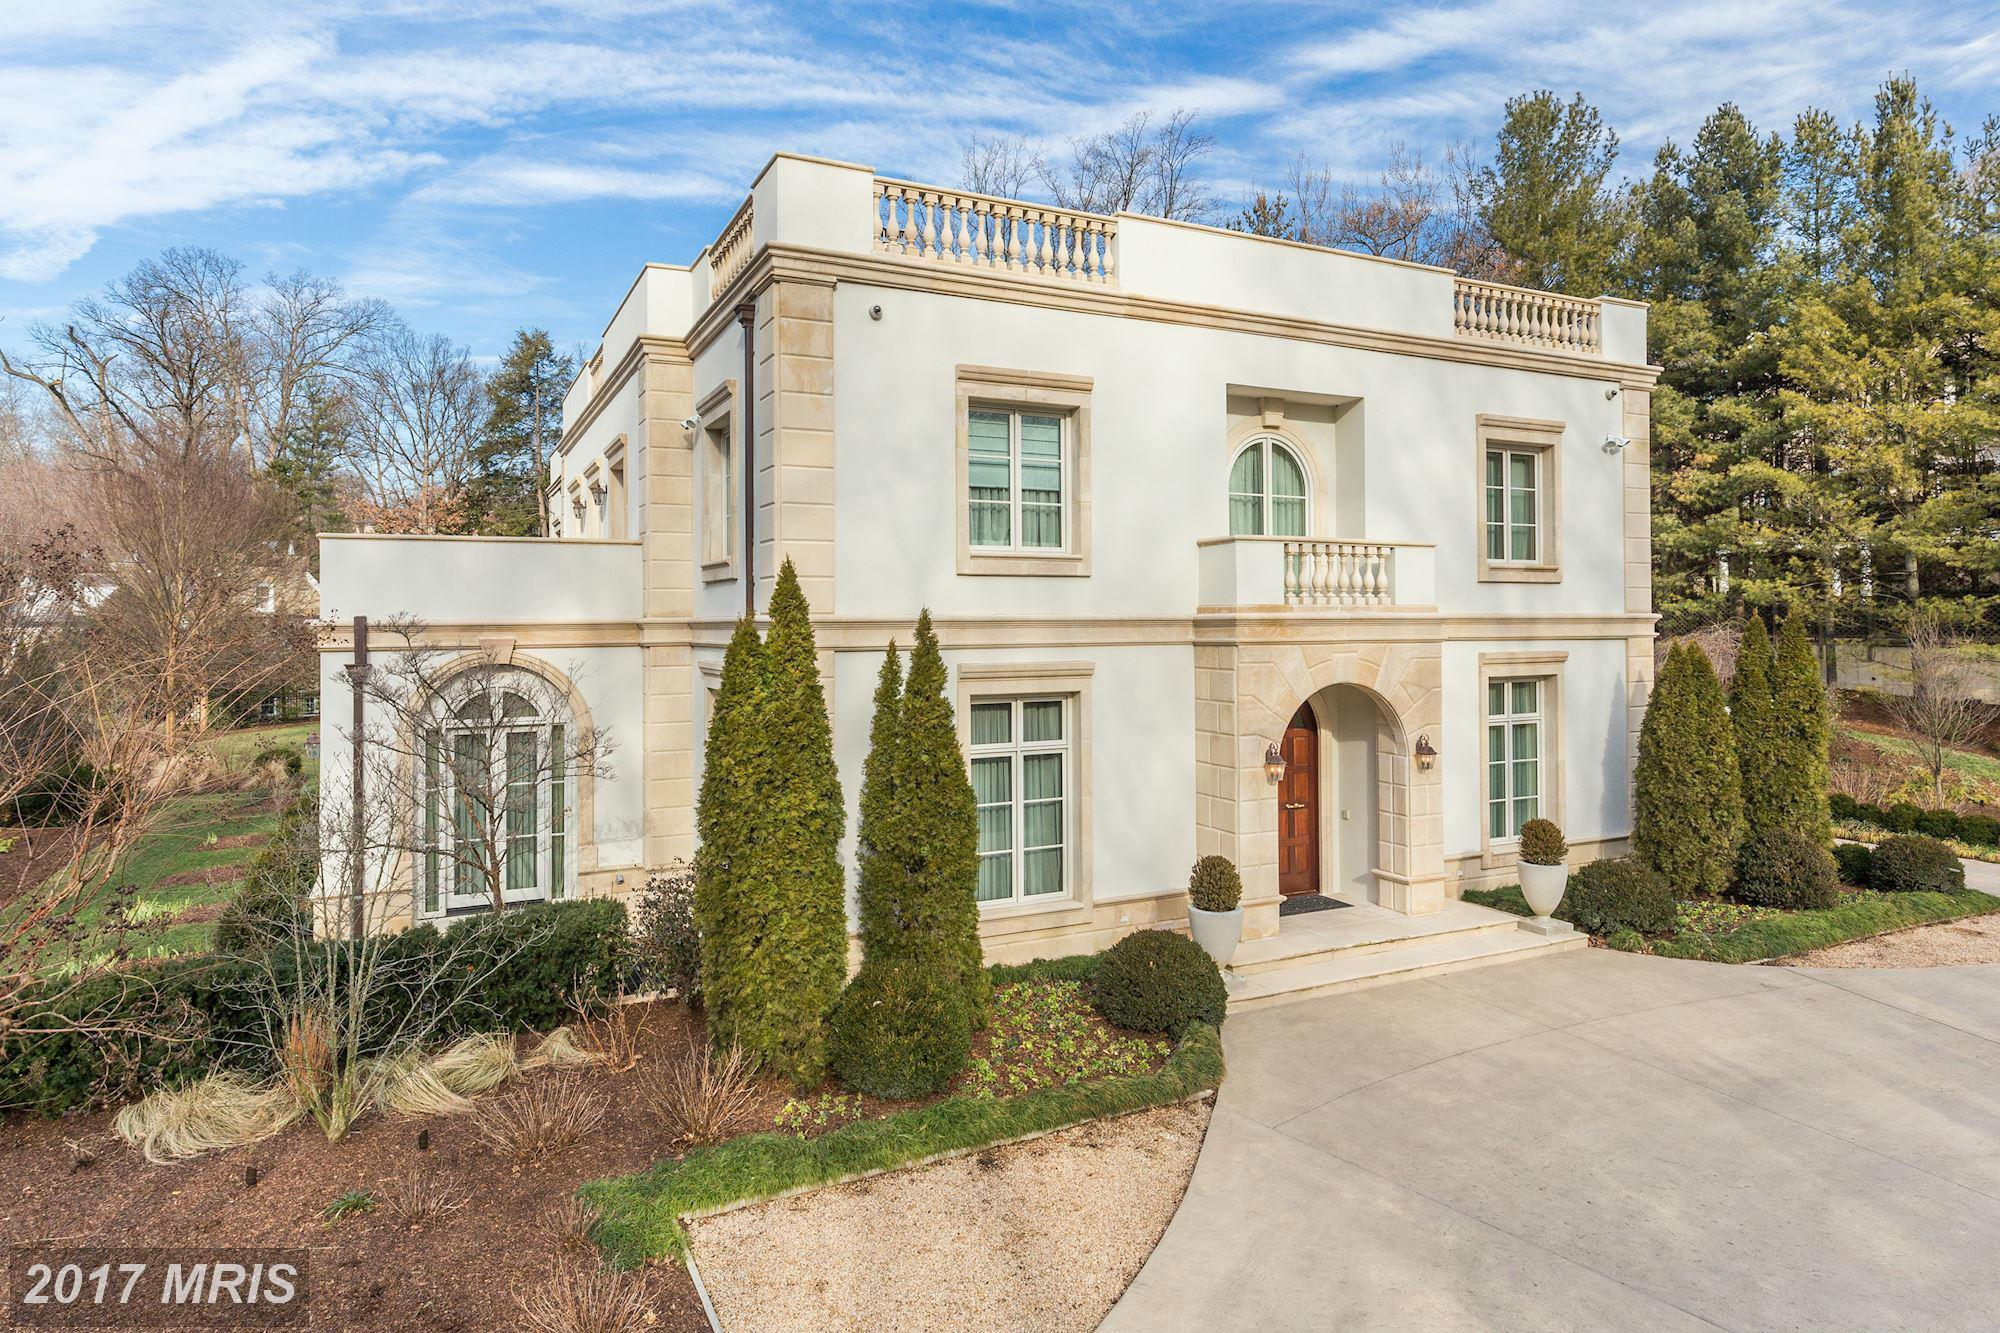 List price: $12,585,000 // Closing price:{&amp;nbsp;}$12,585,000 // 9 bedrooms, 14 bathrooms // Built in 2001// Neighborhood: Cleveland Park // Listing agent: Nelson Marban of Washington Fine Properties // Selling agent: Nancy Taylor Bubes of Washington Fine Properties (Image: Courtesy Bright MLS)<br><p></p>